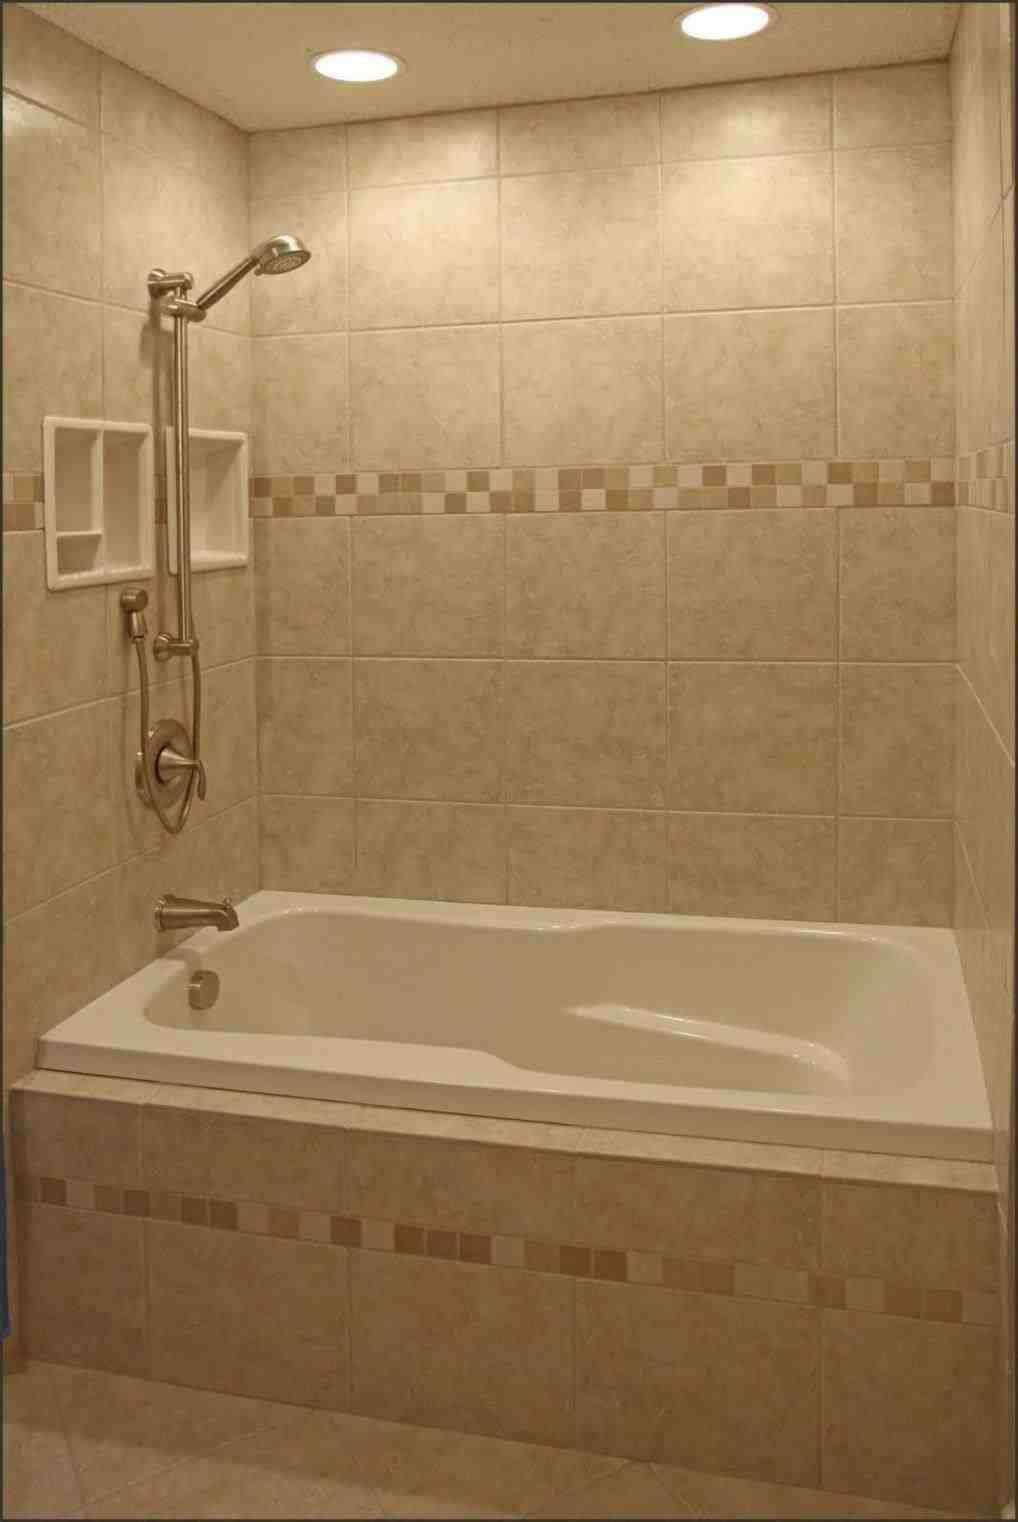 Whirlpool Tub With Shower Combo Bathtub Tile Bathroom Tile Designs Bathroom Tub Shower Combo